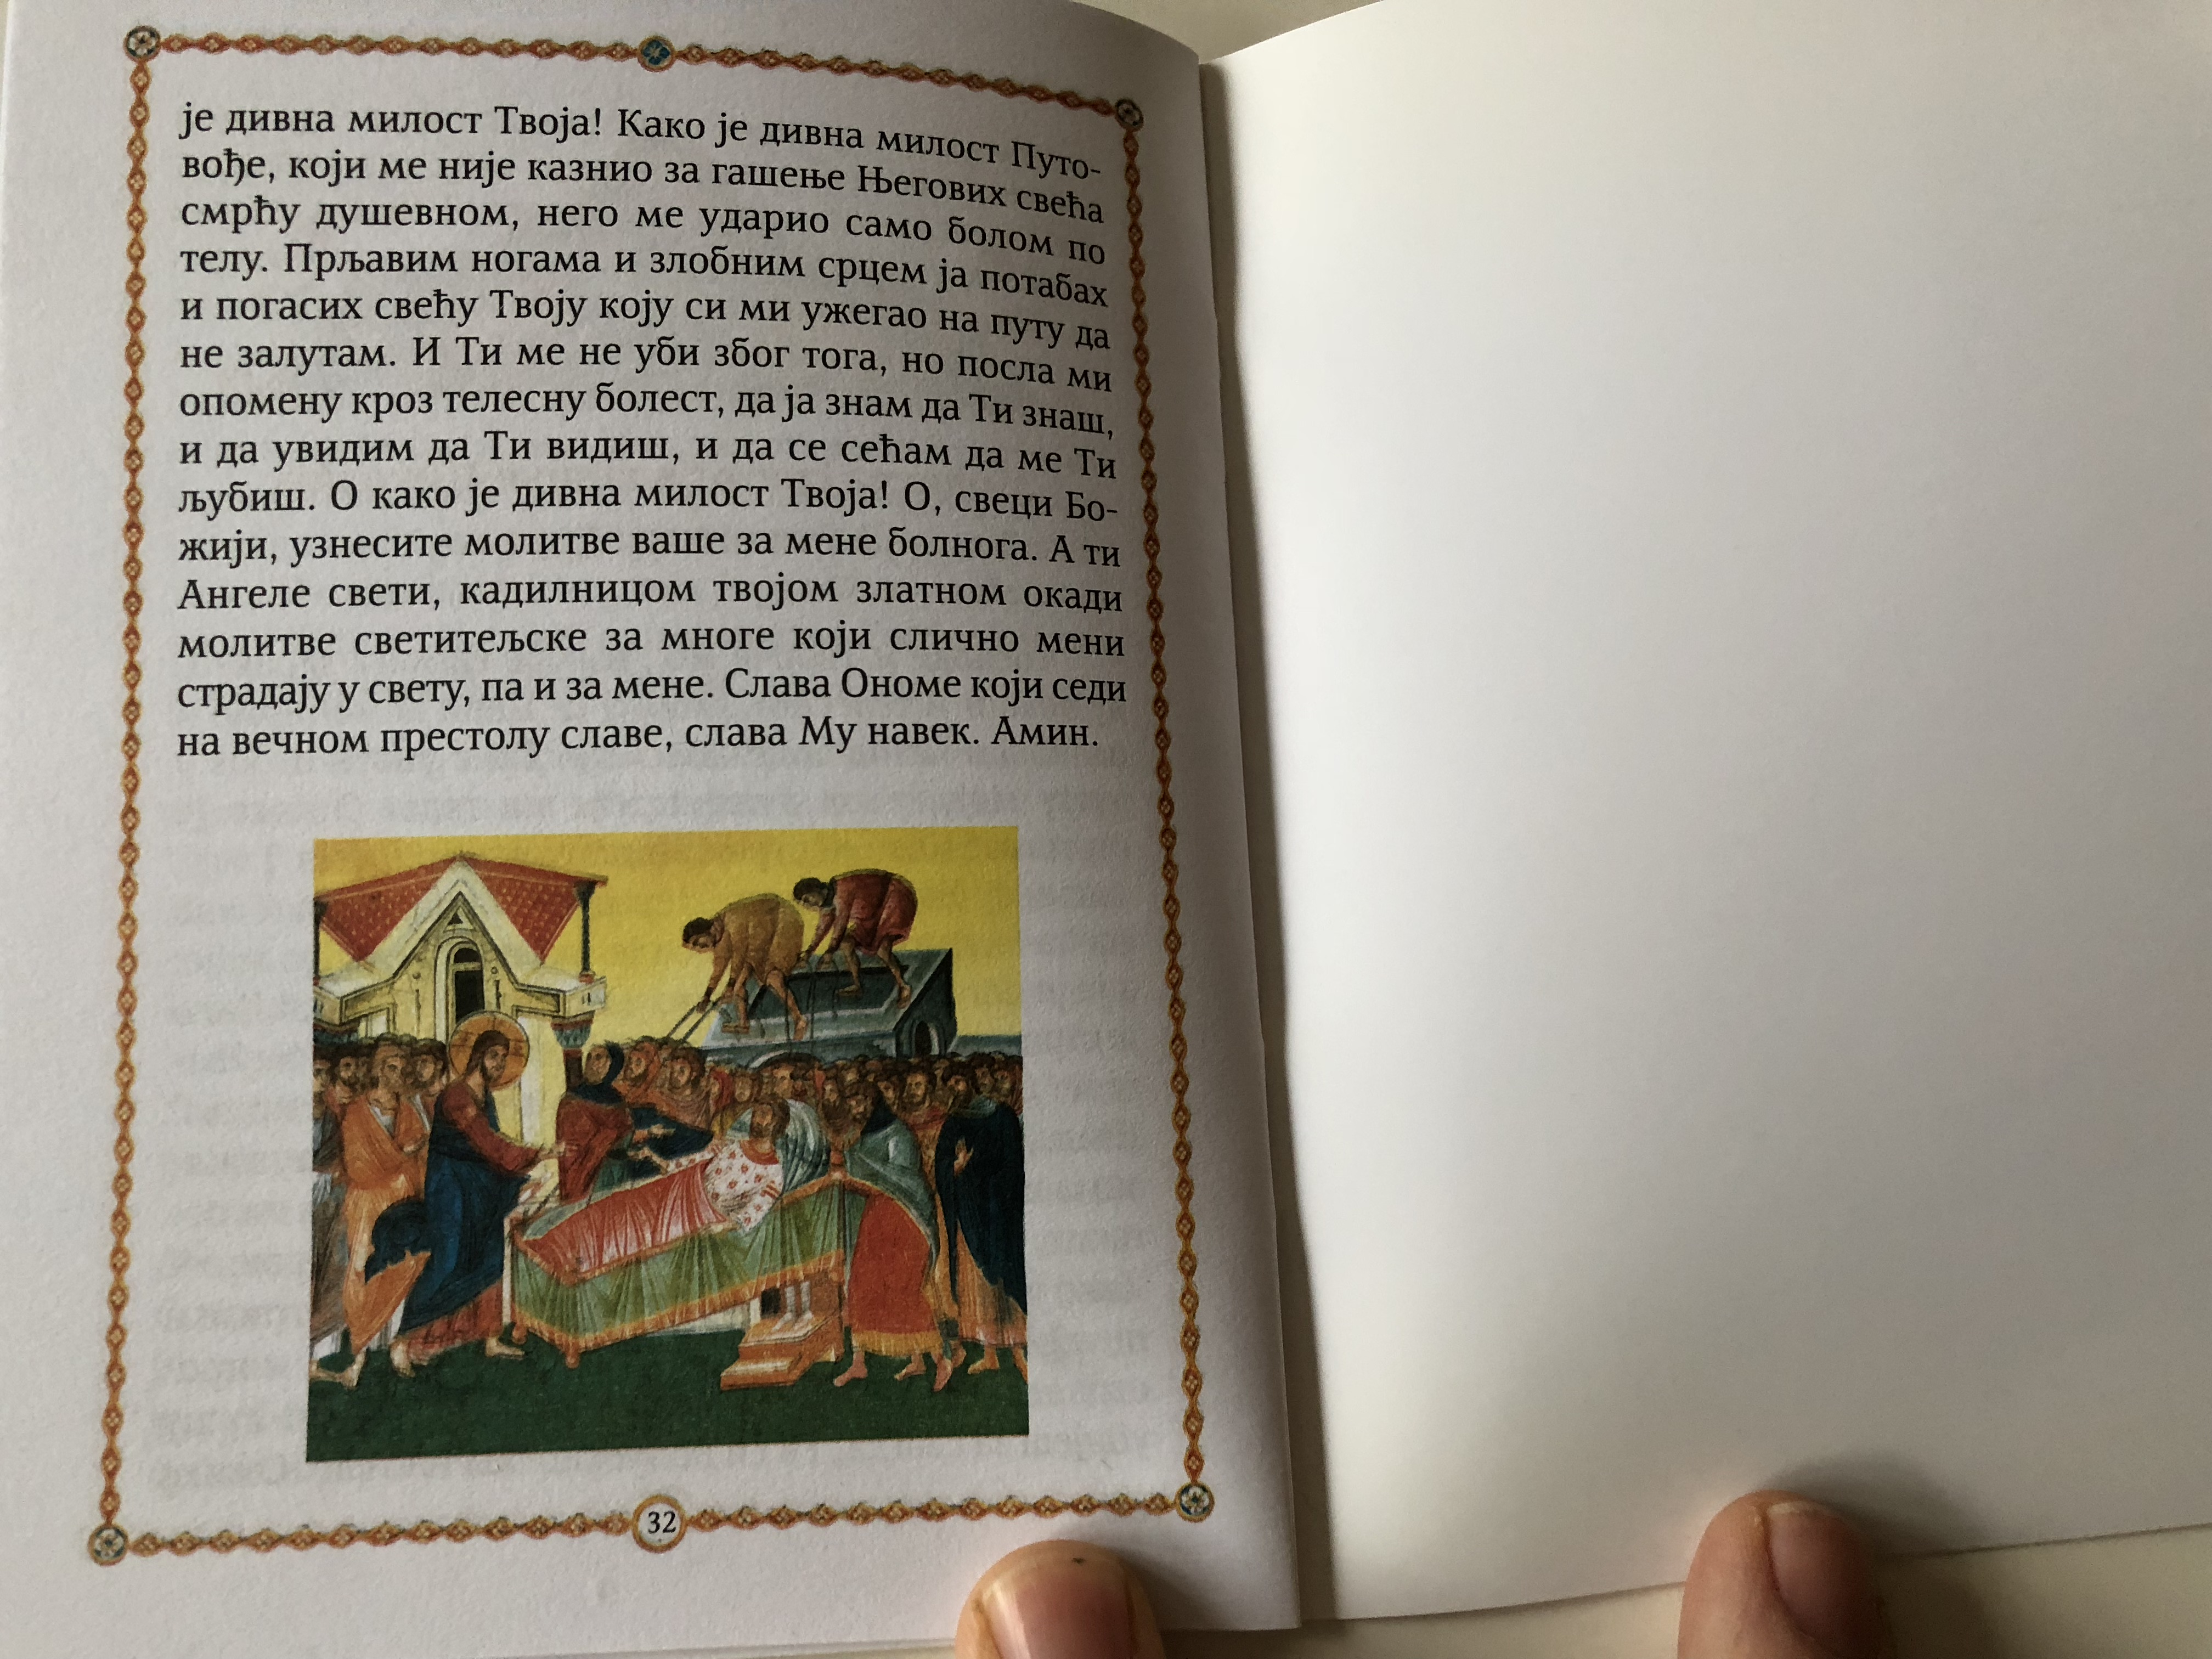 serbian-the-wonder-in-capernaum-orthodox-storybook-7-.jpg